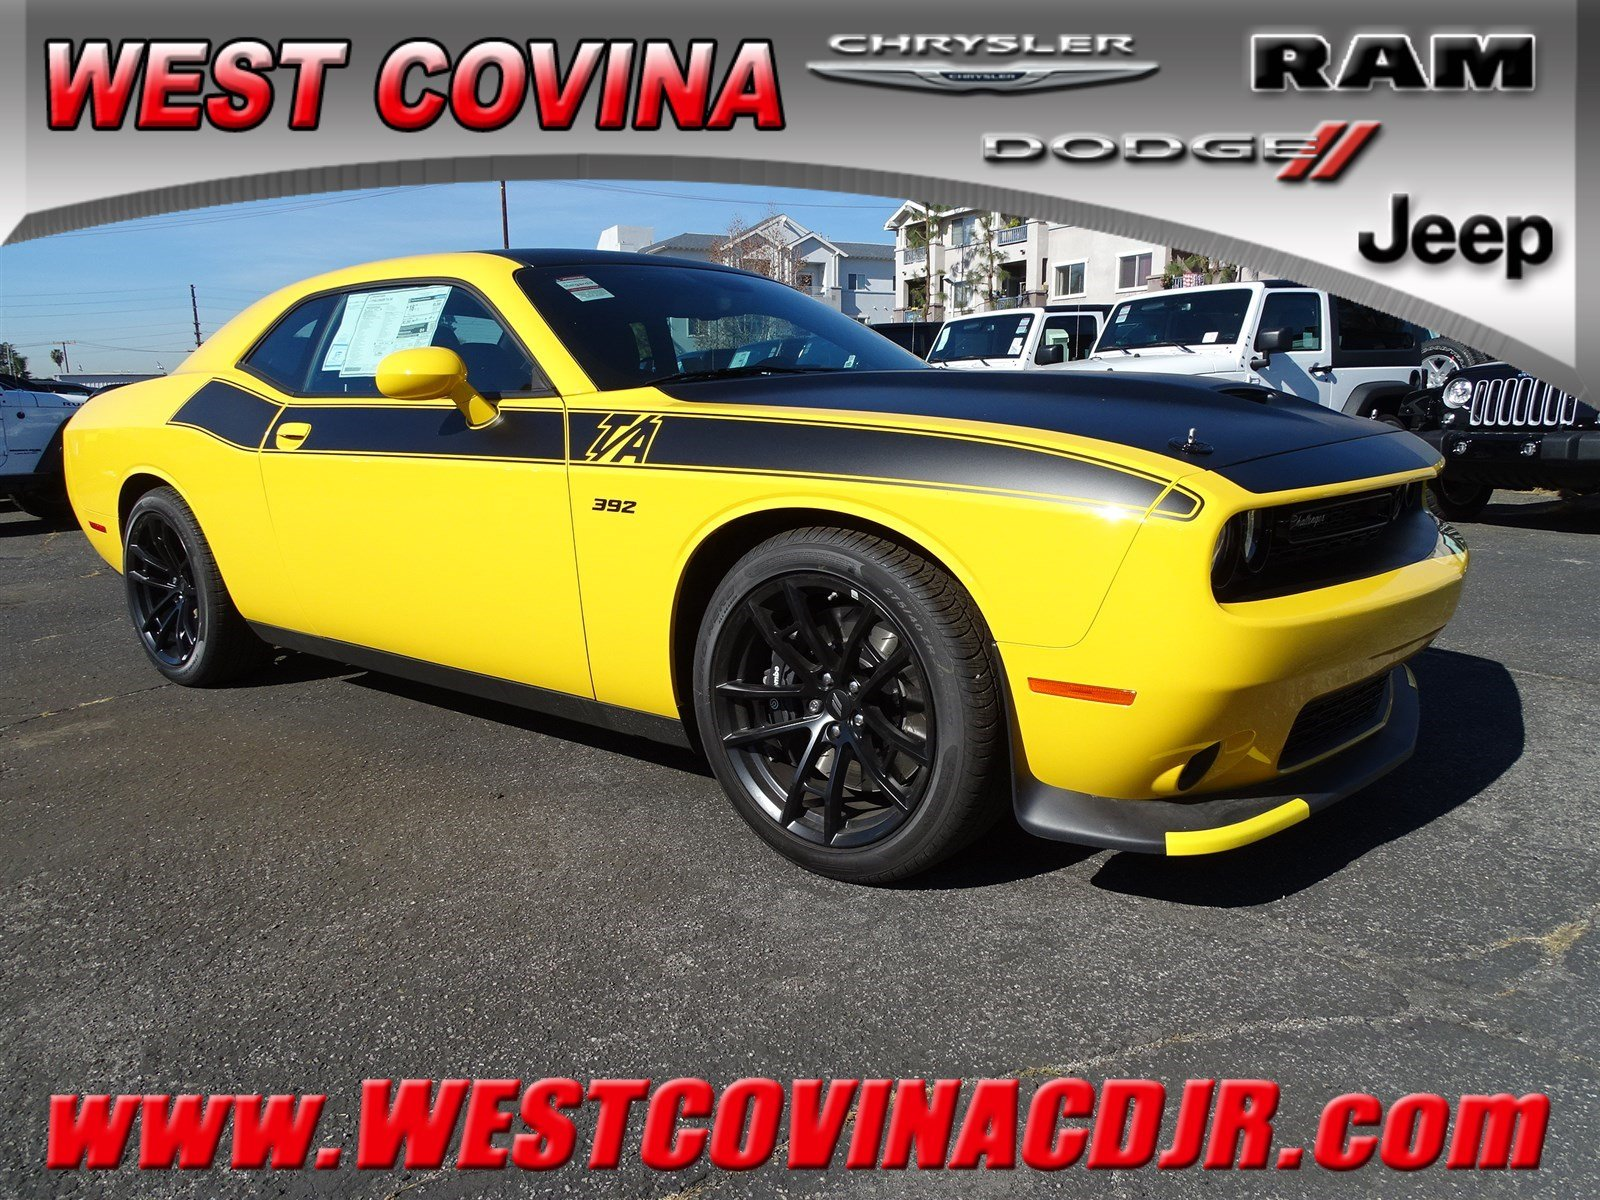 2018 Dodge Challenger T/A 392 T/A 392 RWD for sale in West Covina, CA